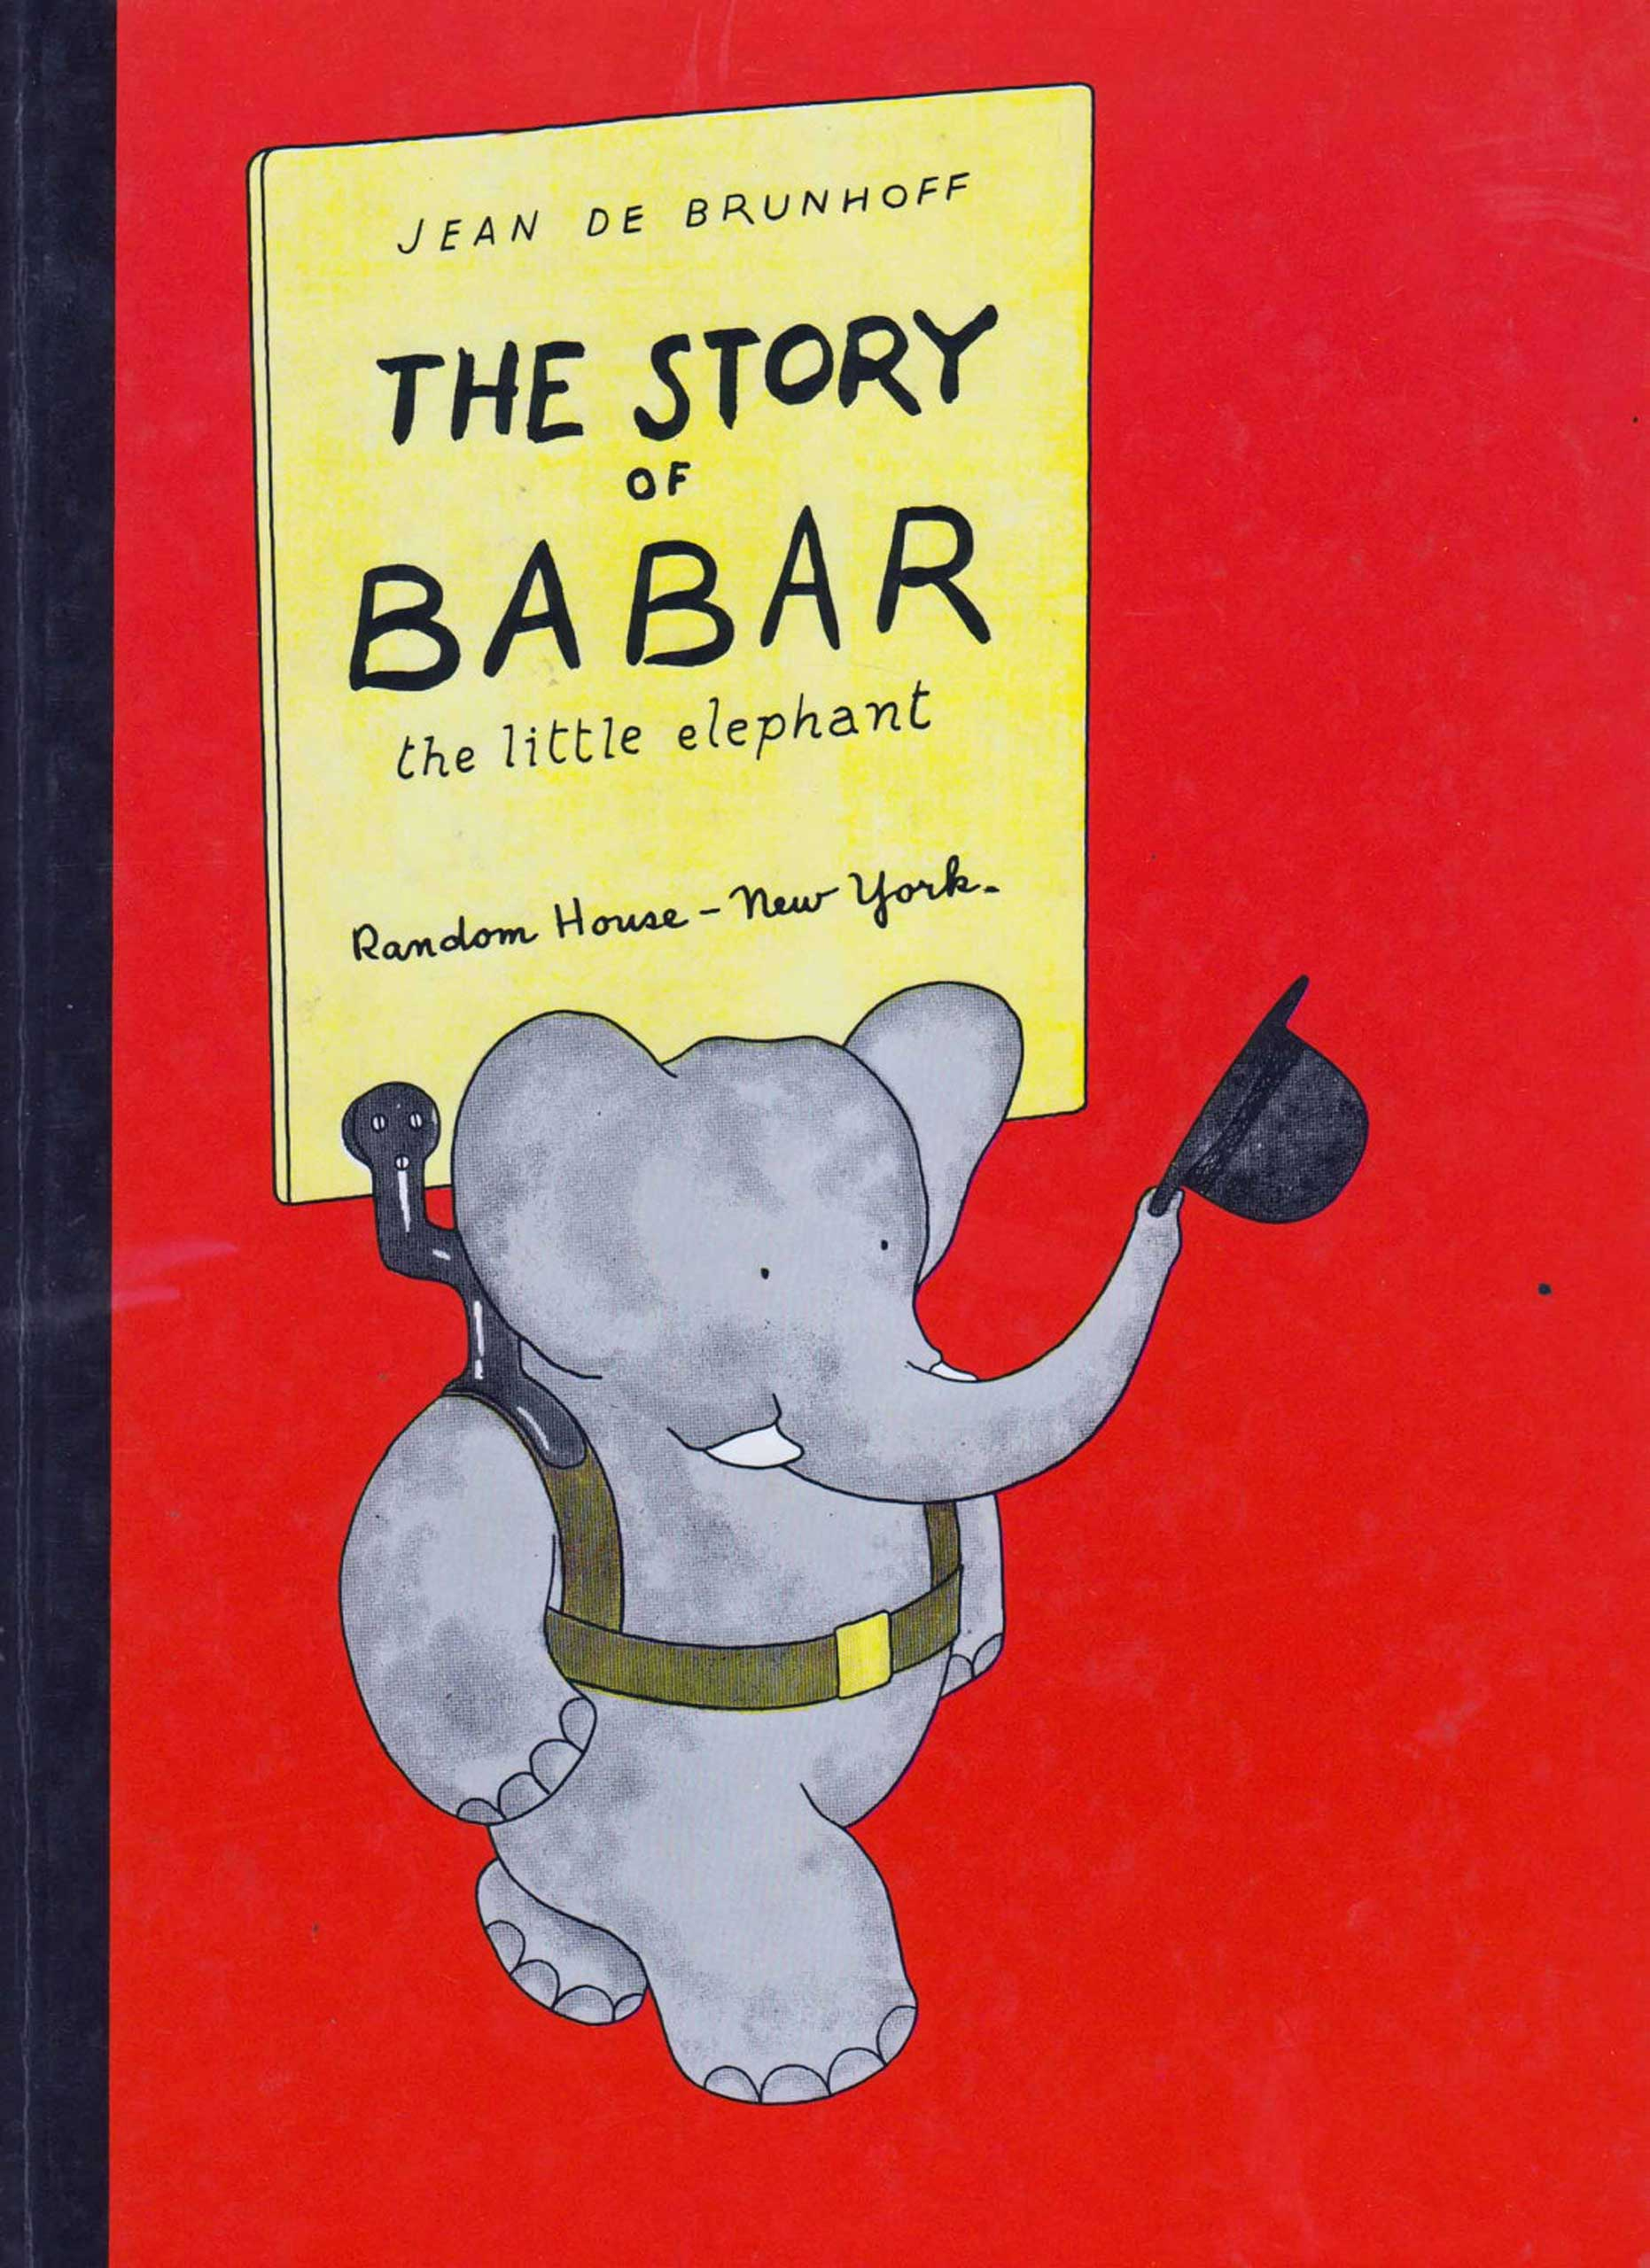 The Story of Babar, by Jean de Brunhoff.                                                                                                                            The beloved French elephant travels from the jungle to the big city and back, just in time to be crowned king of the elephant kingdom.                                                                                                                            Buy now: The Story of Babar